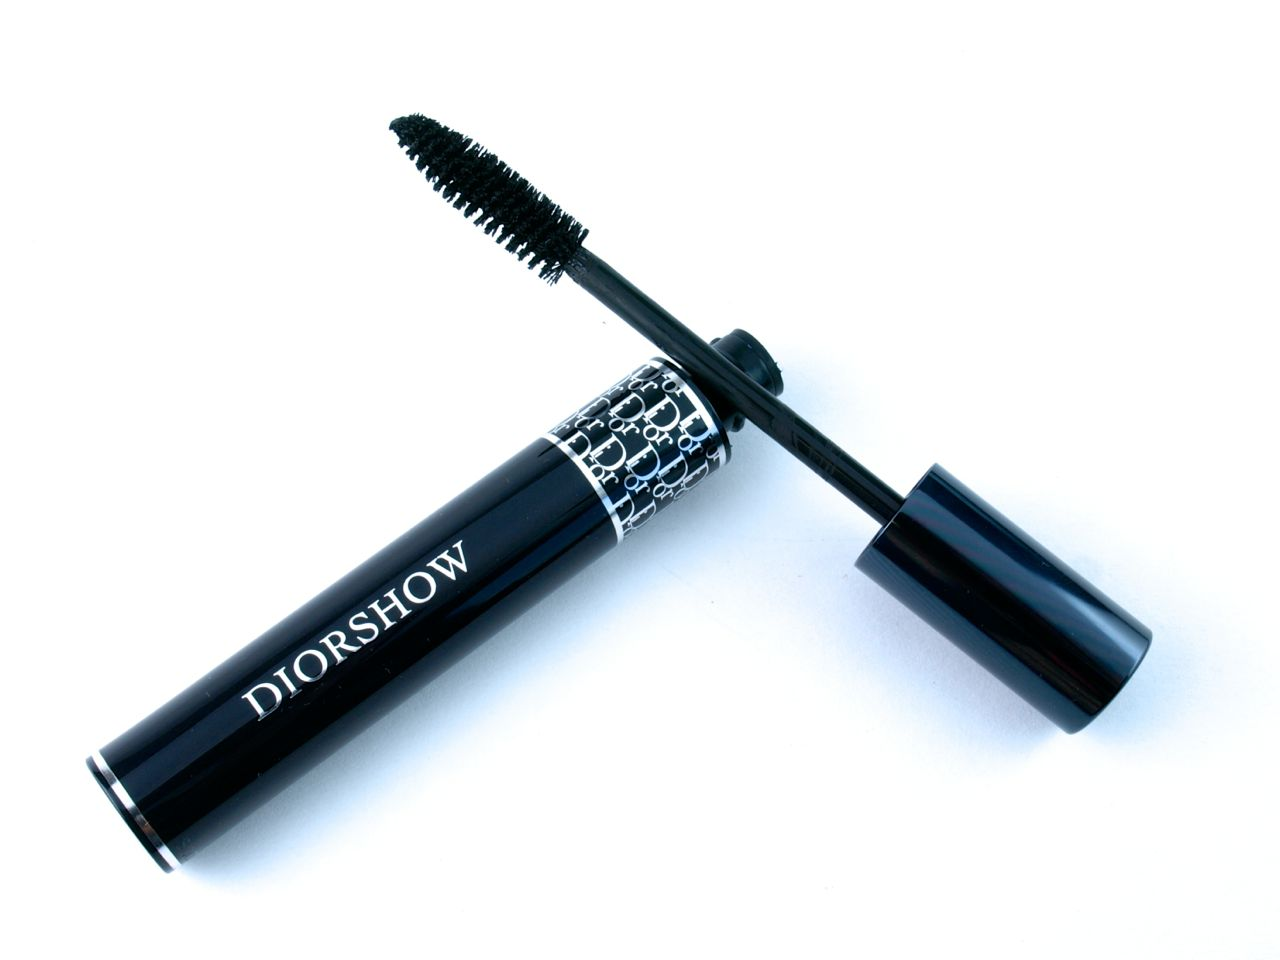 "New 2015 Dior Diorshow Mascara with Lash Extension Effect in ""090 Pro Black"": Review and Swatches"